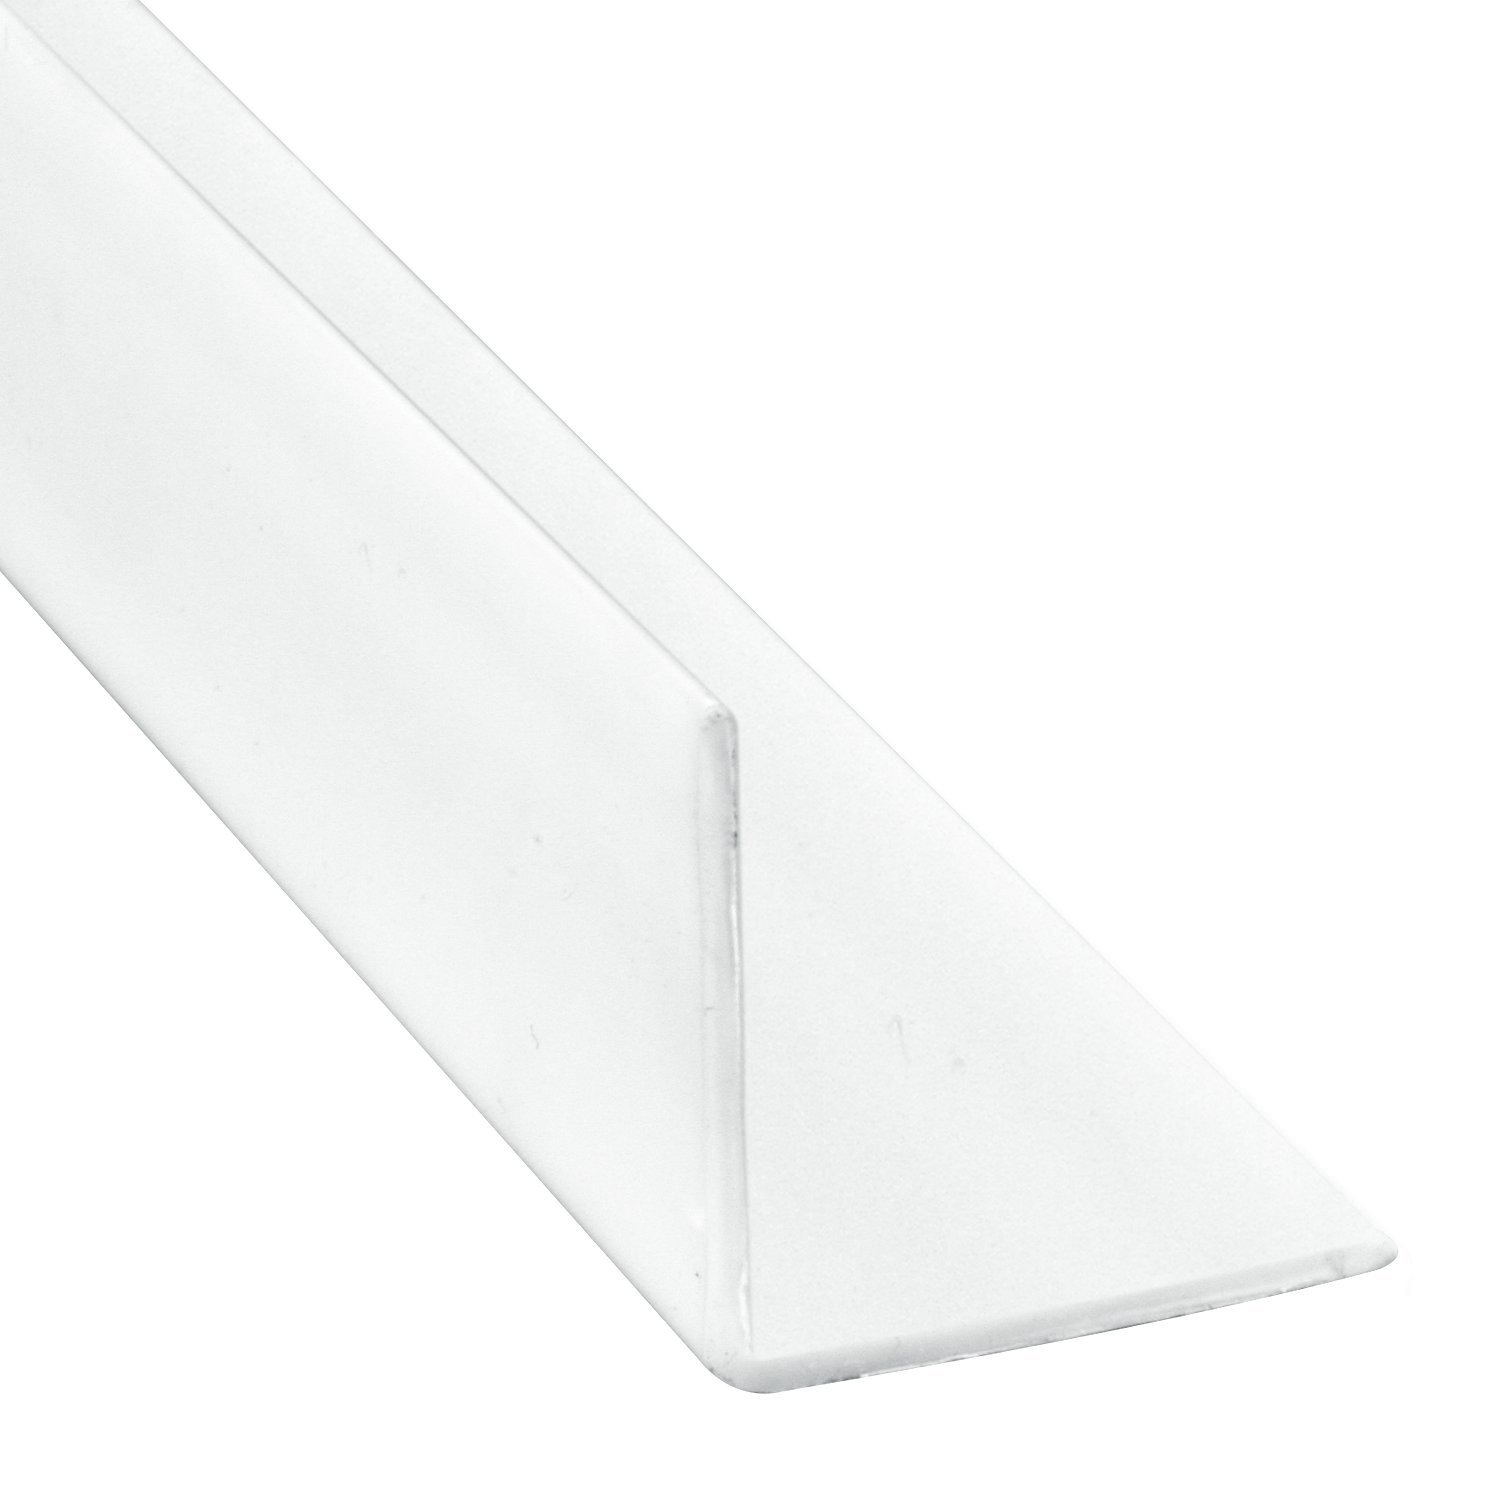 Prime-Line Products MP10066 Corner Shield w/Tape, 3/4 in. x 4 in, Vinyl Construction, White, 5 Pack, 5 Piece by PRIME-LINE (Image #1)